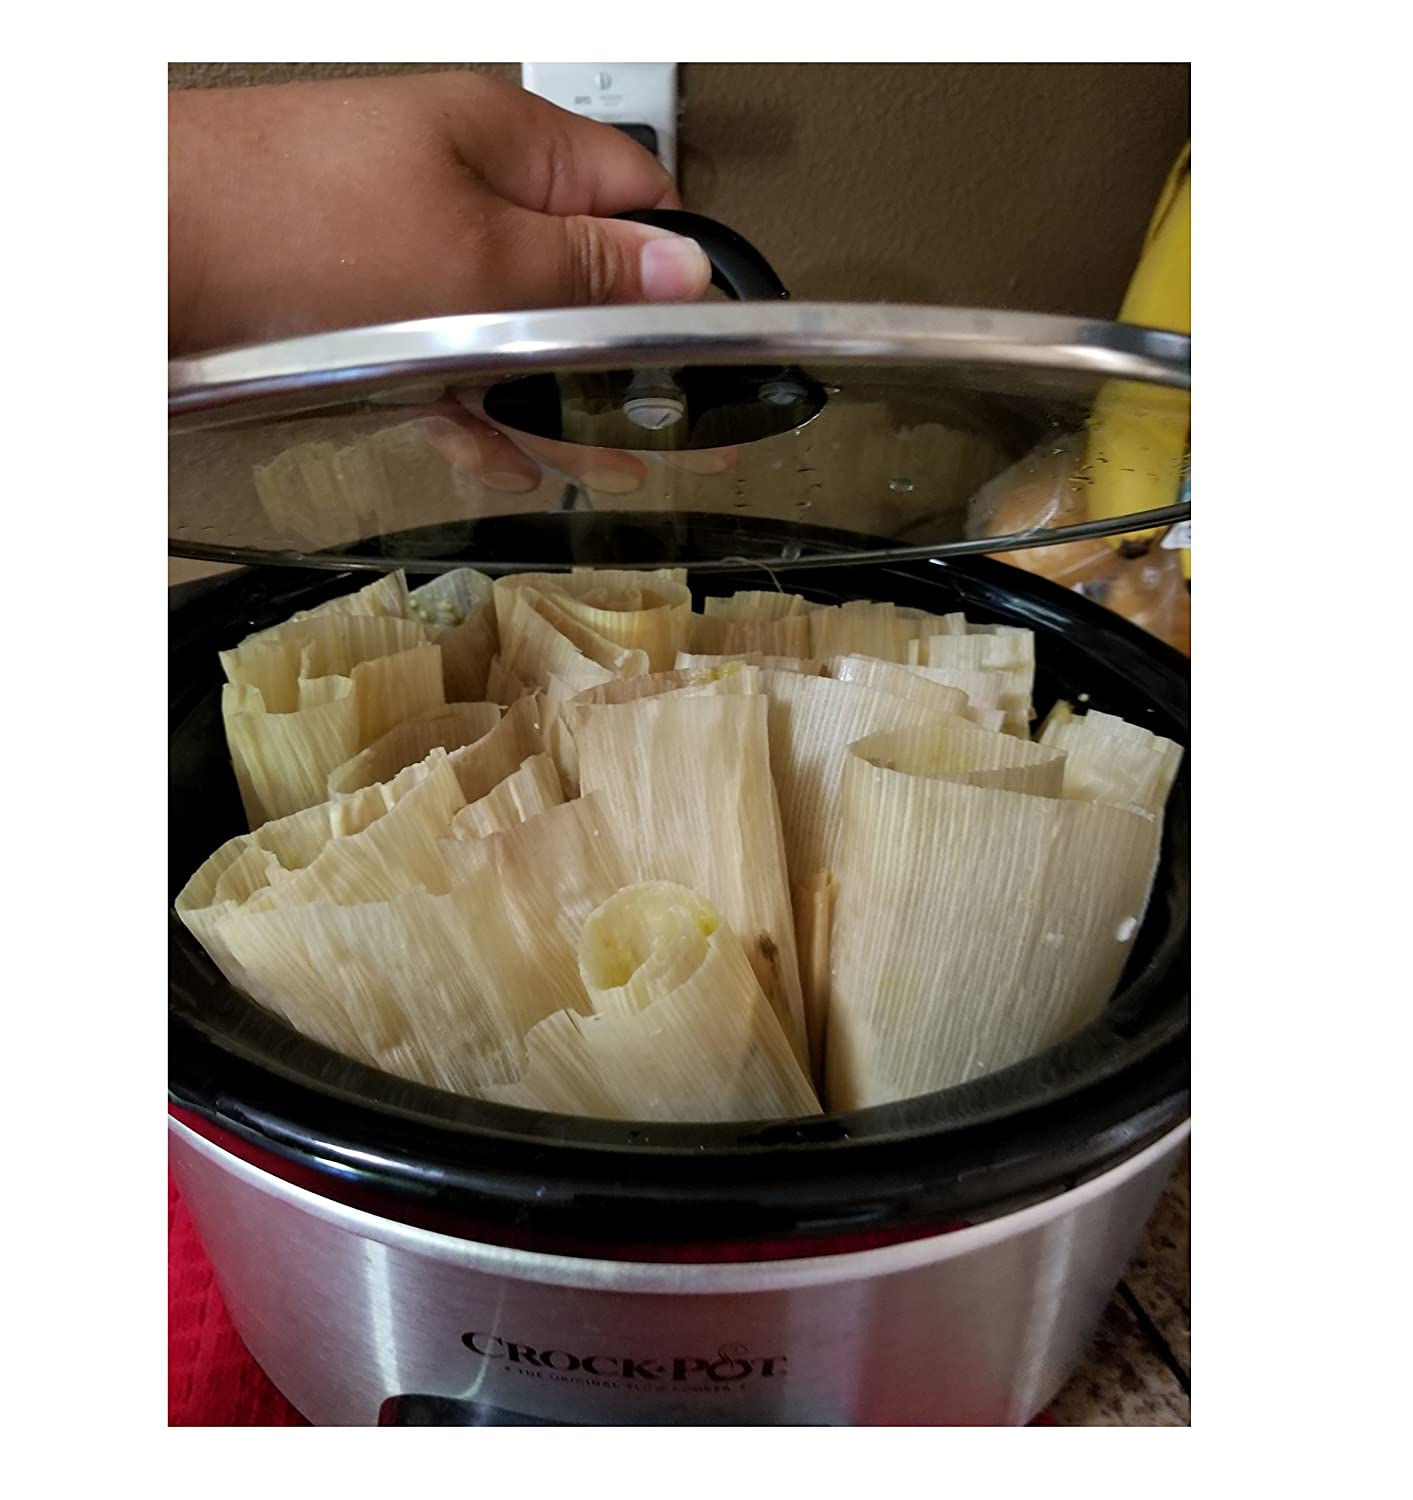 Amazon.com : Corn Husk Los Tamales -Spice UrLife : Grocery & Gourmet Food